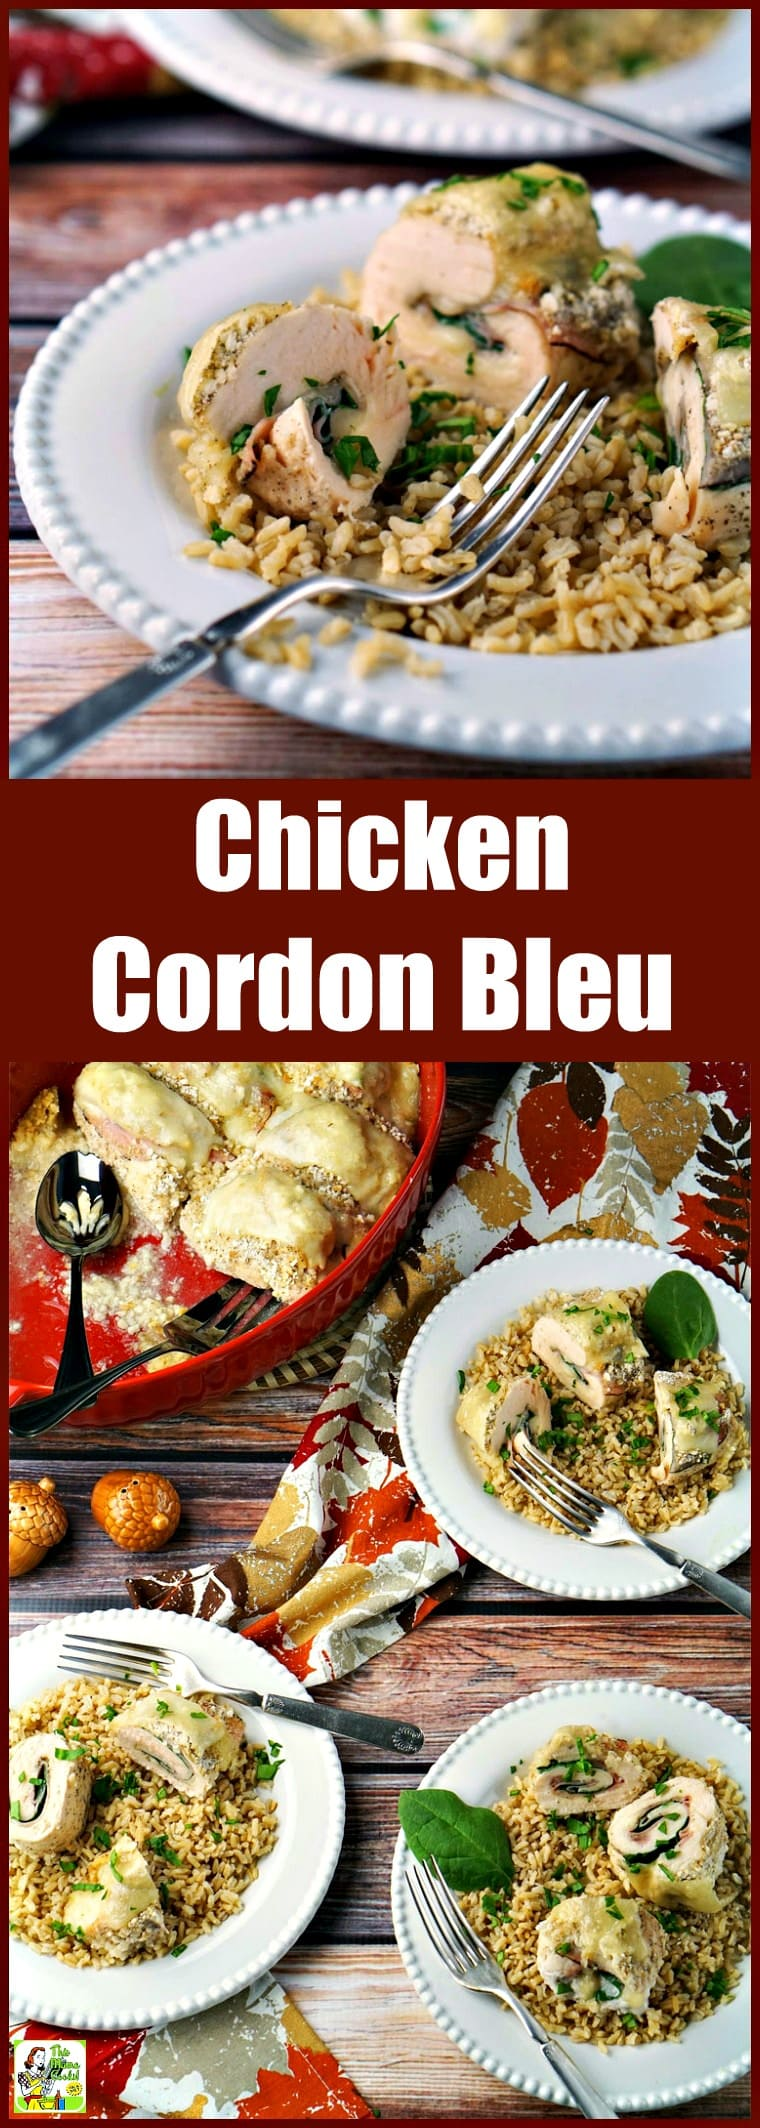 This Chicken Cordon Bleu Recipe makes an easy weeknight dinner. Baked chicken cordon bleu is also gluten-free. This easy dinner recipe rolls the chicken with the deli ham and cheese slices, pinwheel style. #recipes #easy #recipeoftheday #glutenfree #easyrecipe #easyrecipes #glutenfreerecipes #dinner #easydinner #dinnerrecipes #dinnerideas #chicken #chickenfoodrecipes #chickenrecipes